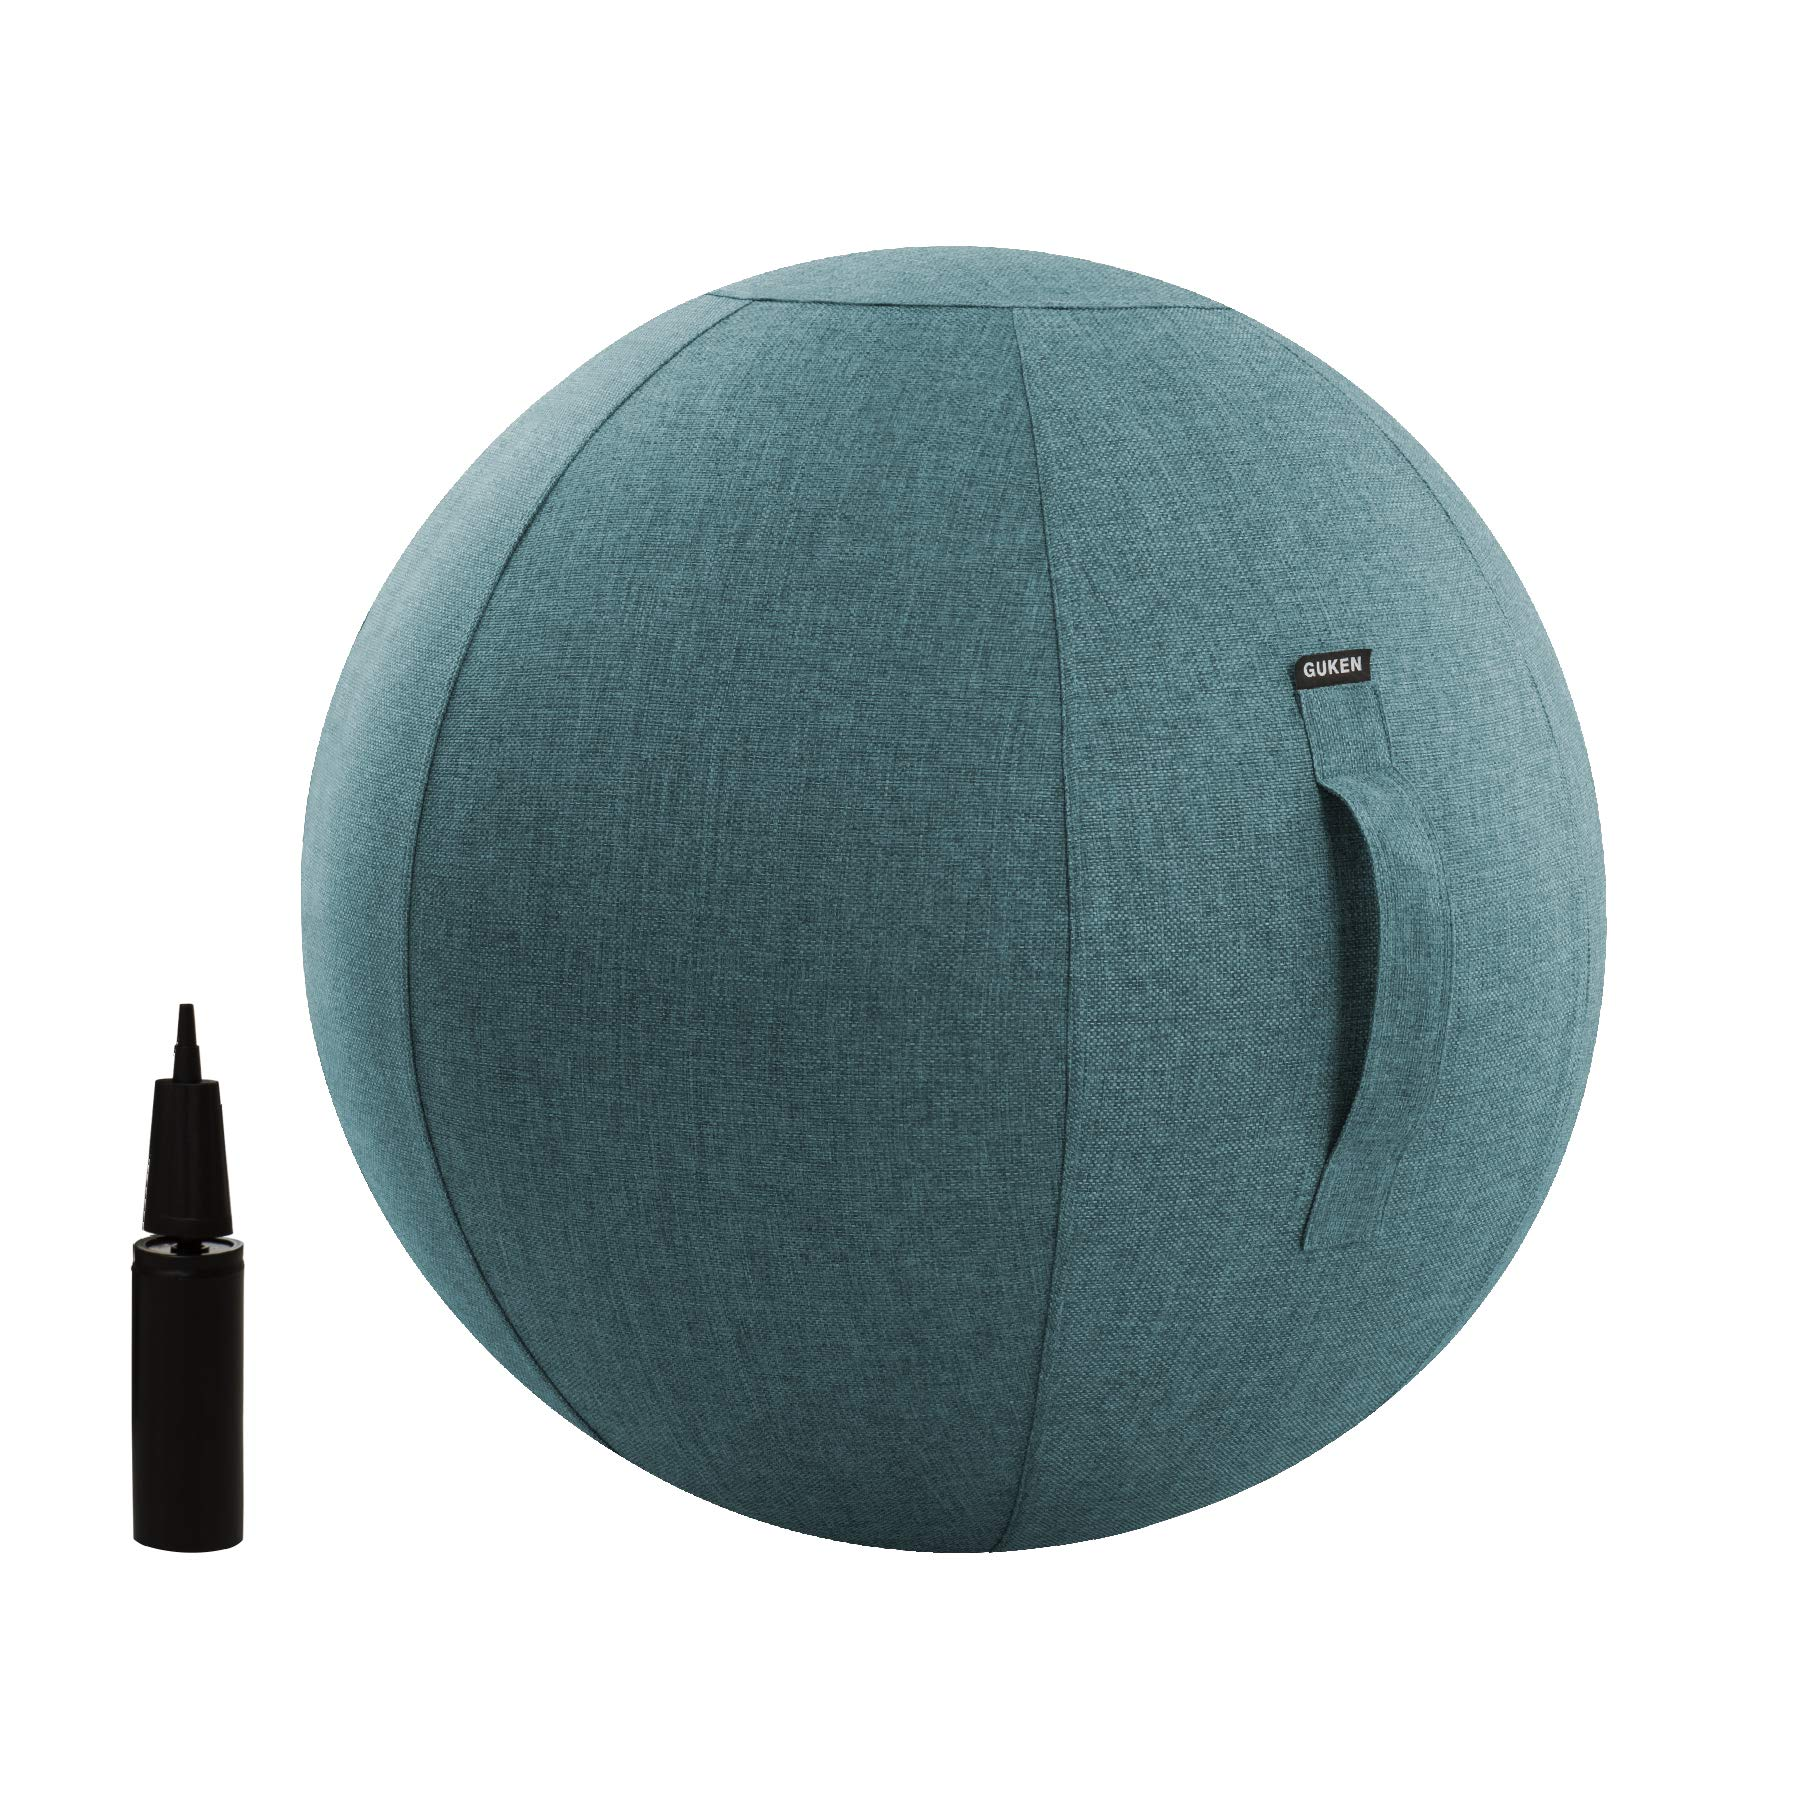 Ball Chair - Lightweight Self-Standing Ergonomic Posture Activating Exercise Ball Chair with Cover Multi-Purpose Yoga Exercise Ball Stability, Fitness and Birthing Ball with Inflator and Handle 65